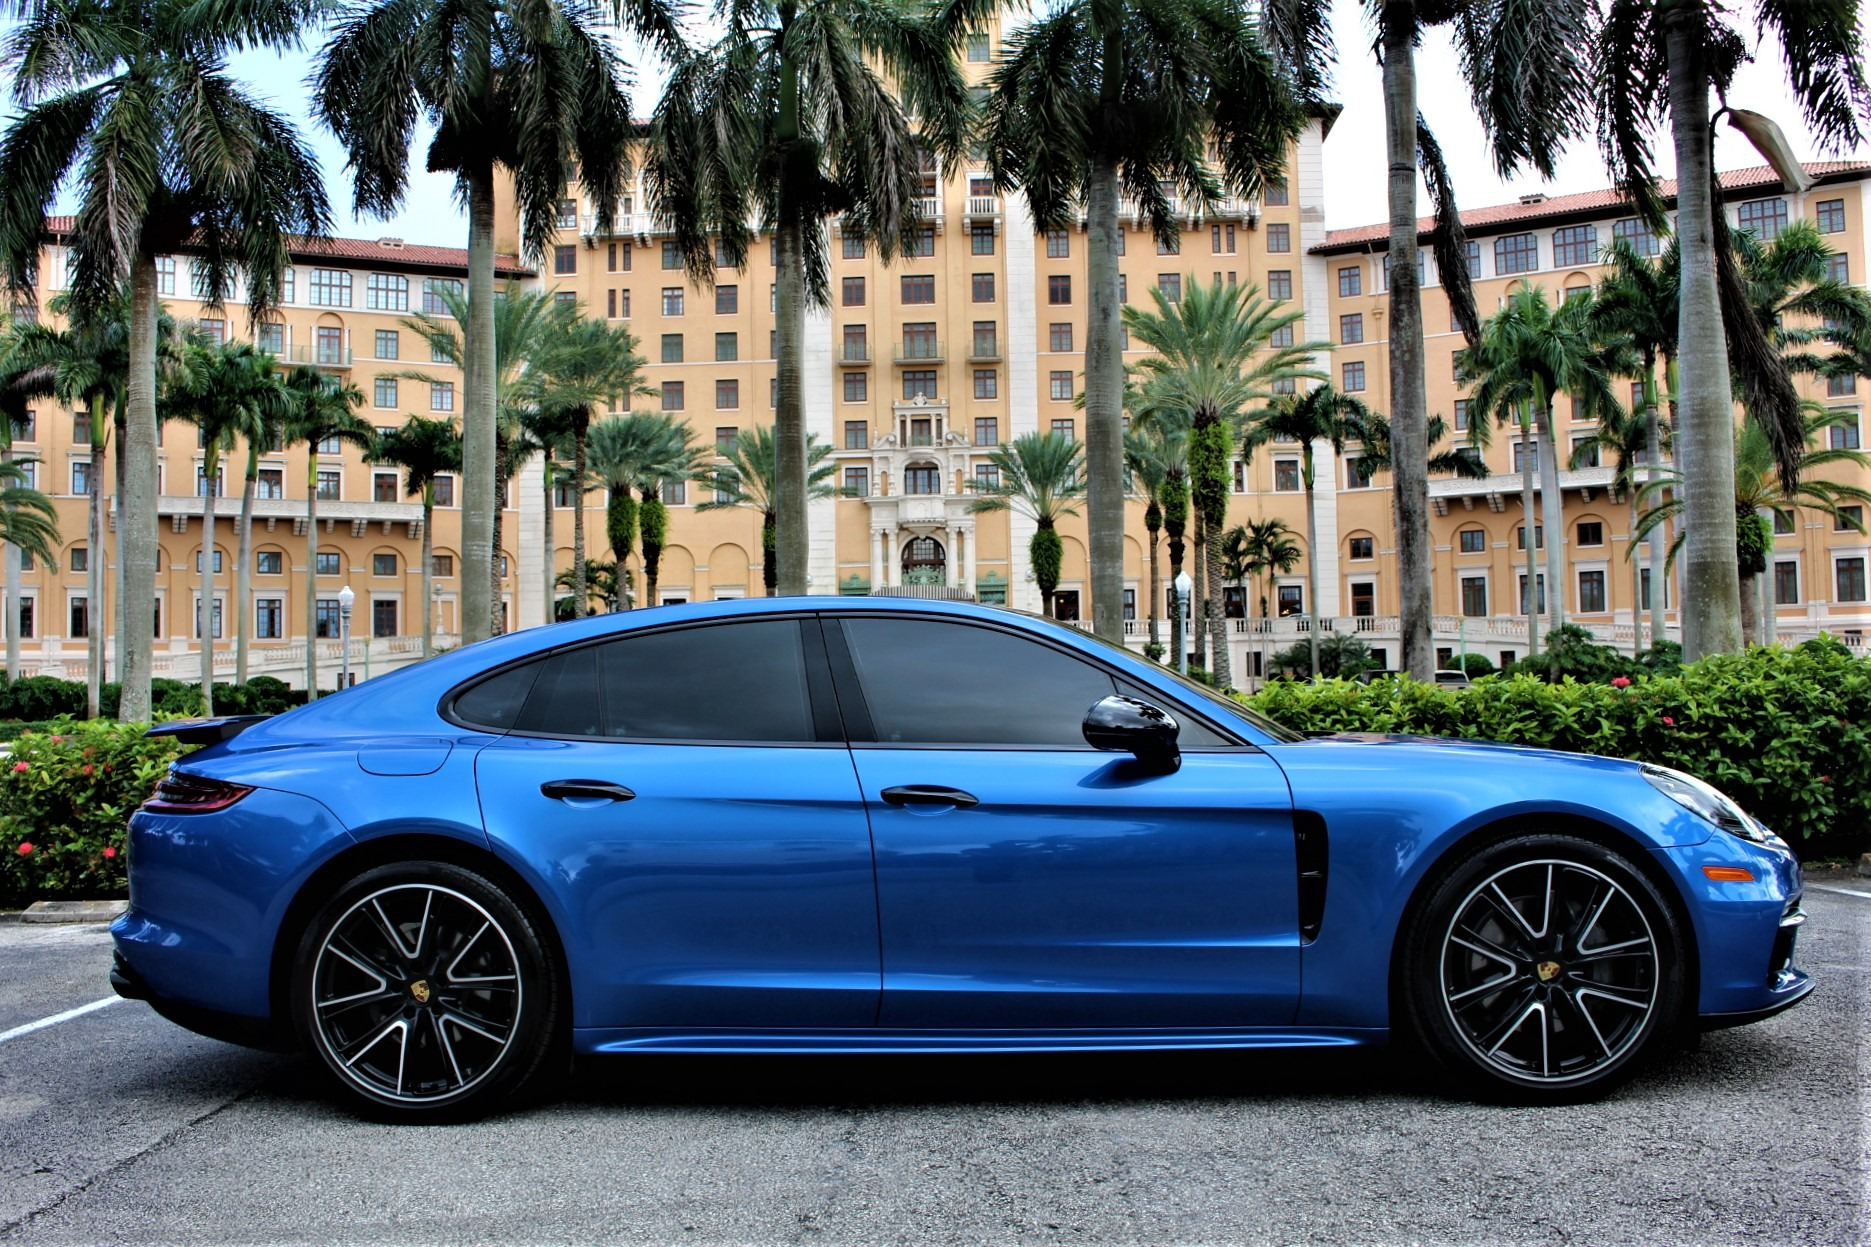 Used 2018 Porsche Panamera 4S for sale Sold at The Gables Sports Cars in Miami FL 33146 2